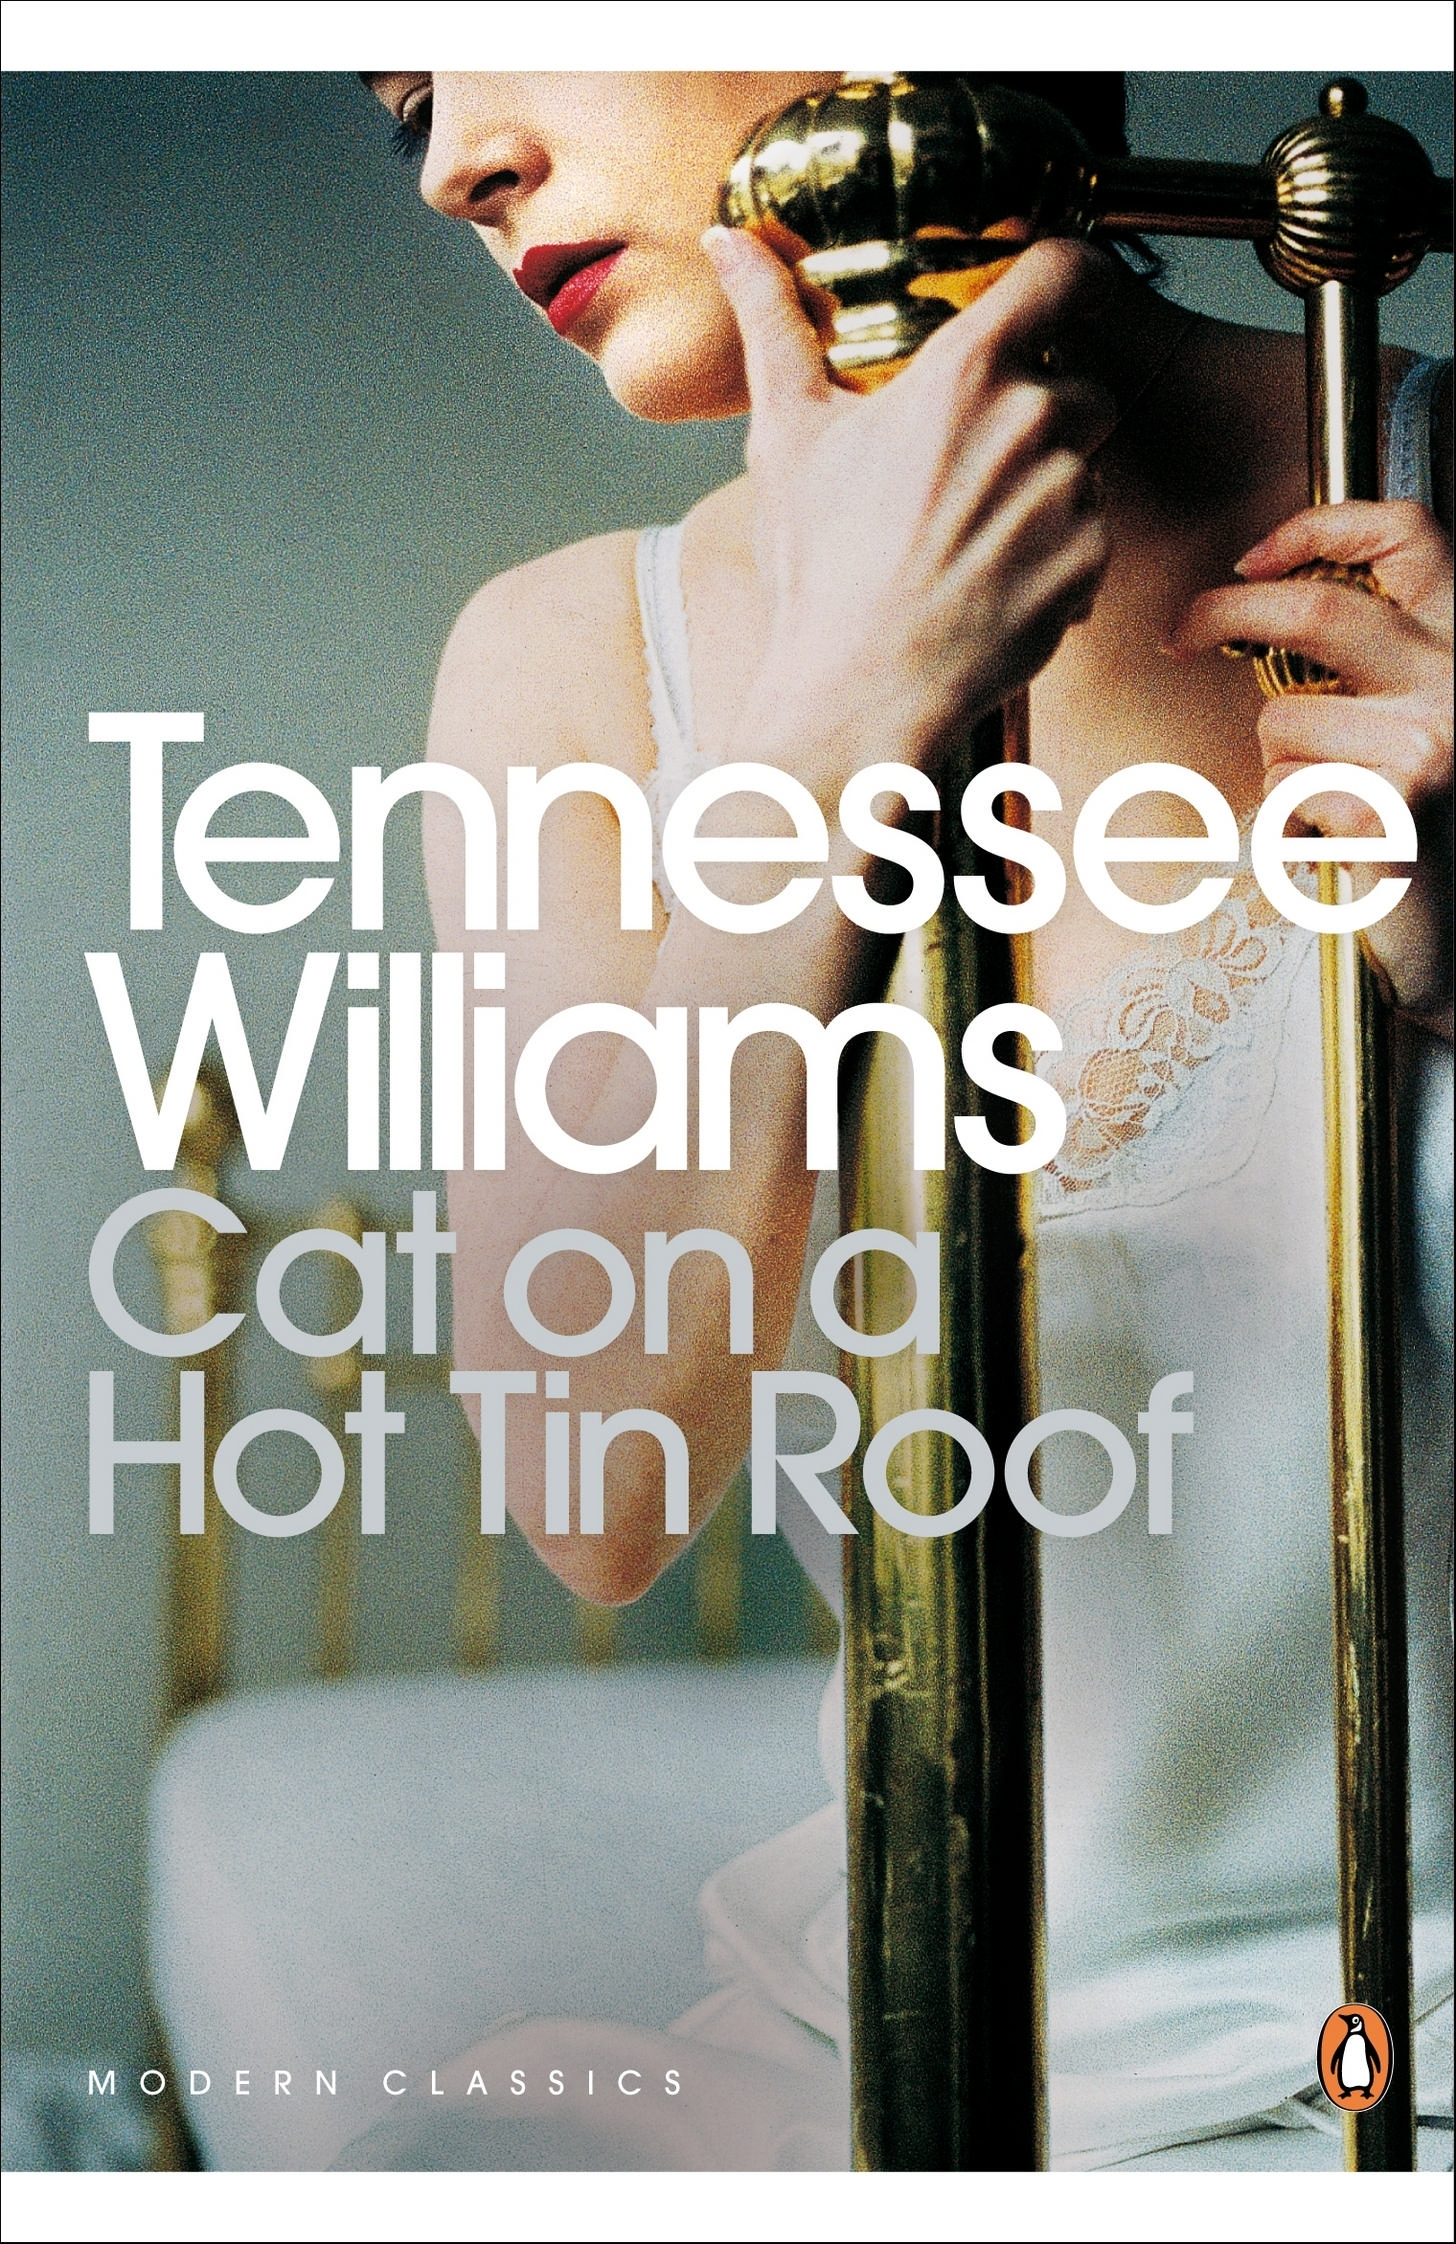 Cat on a Hot Tin Roof by Tennessee Williams, ISBN: 9780141190280